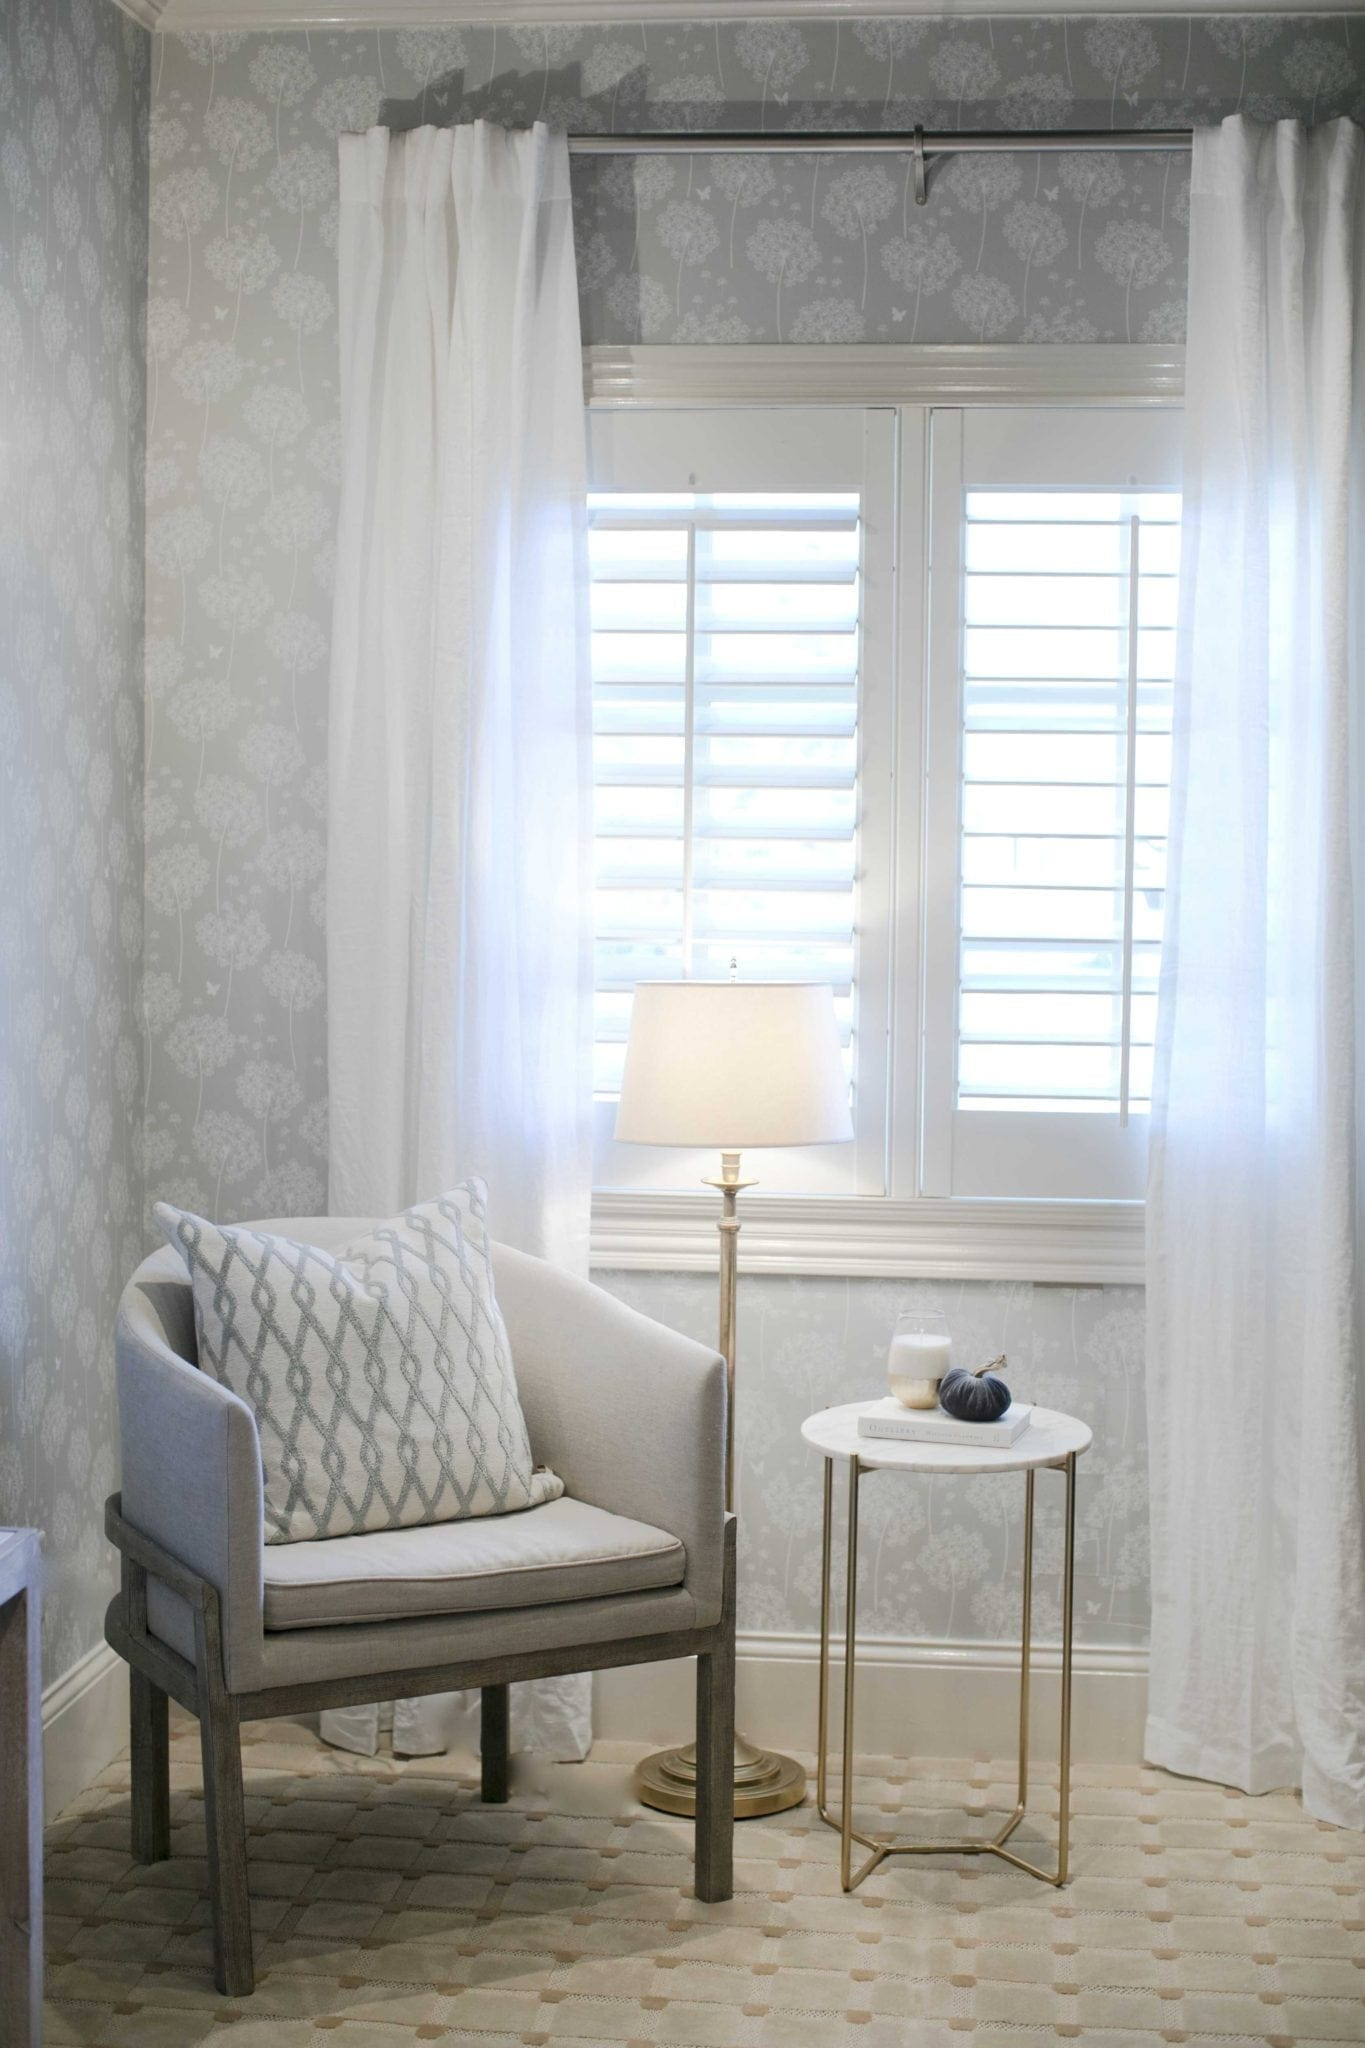 White and gray wallpaper. The easiest and most affordable way to transform a room! My home office before and after photos.